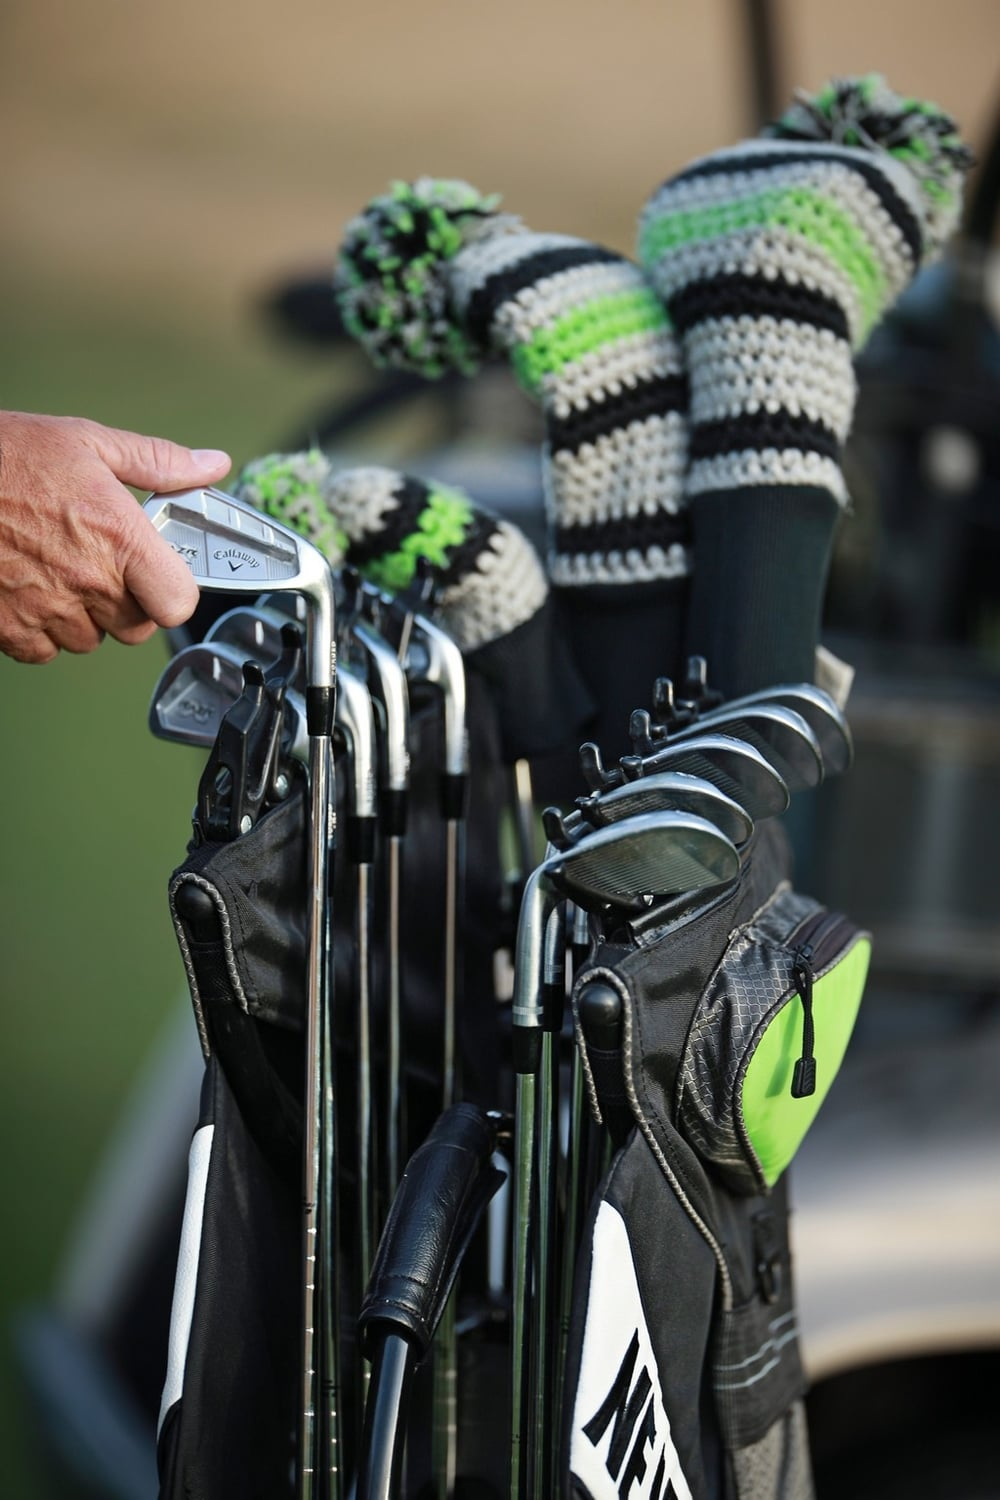 CUSTOMIZE. CLUBS EASILY GLIDE IN AND OUT